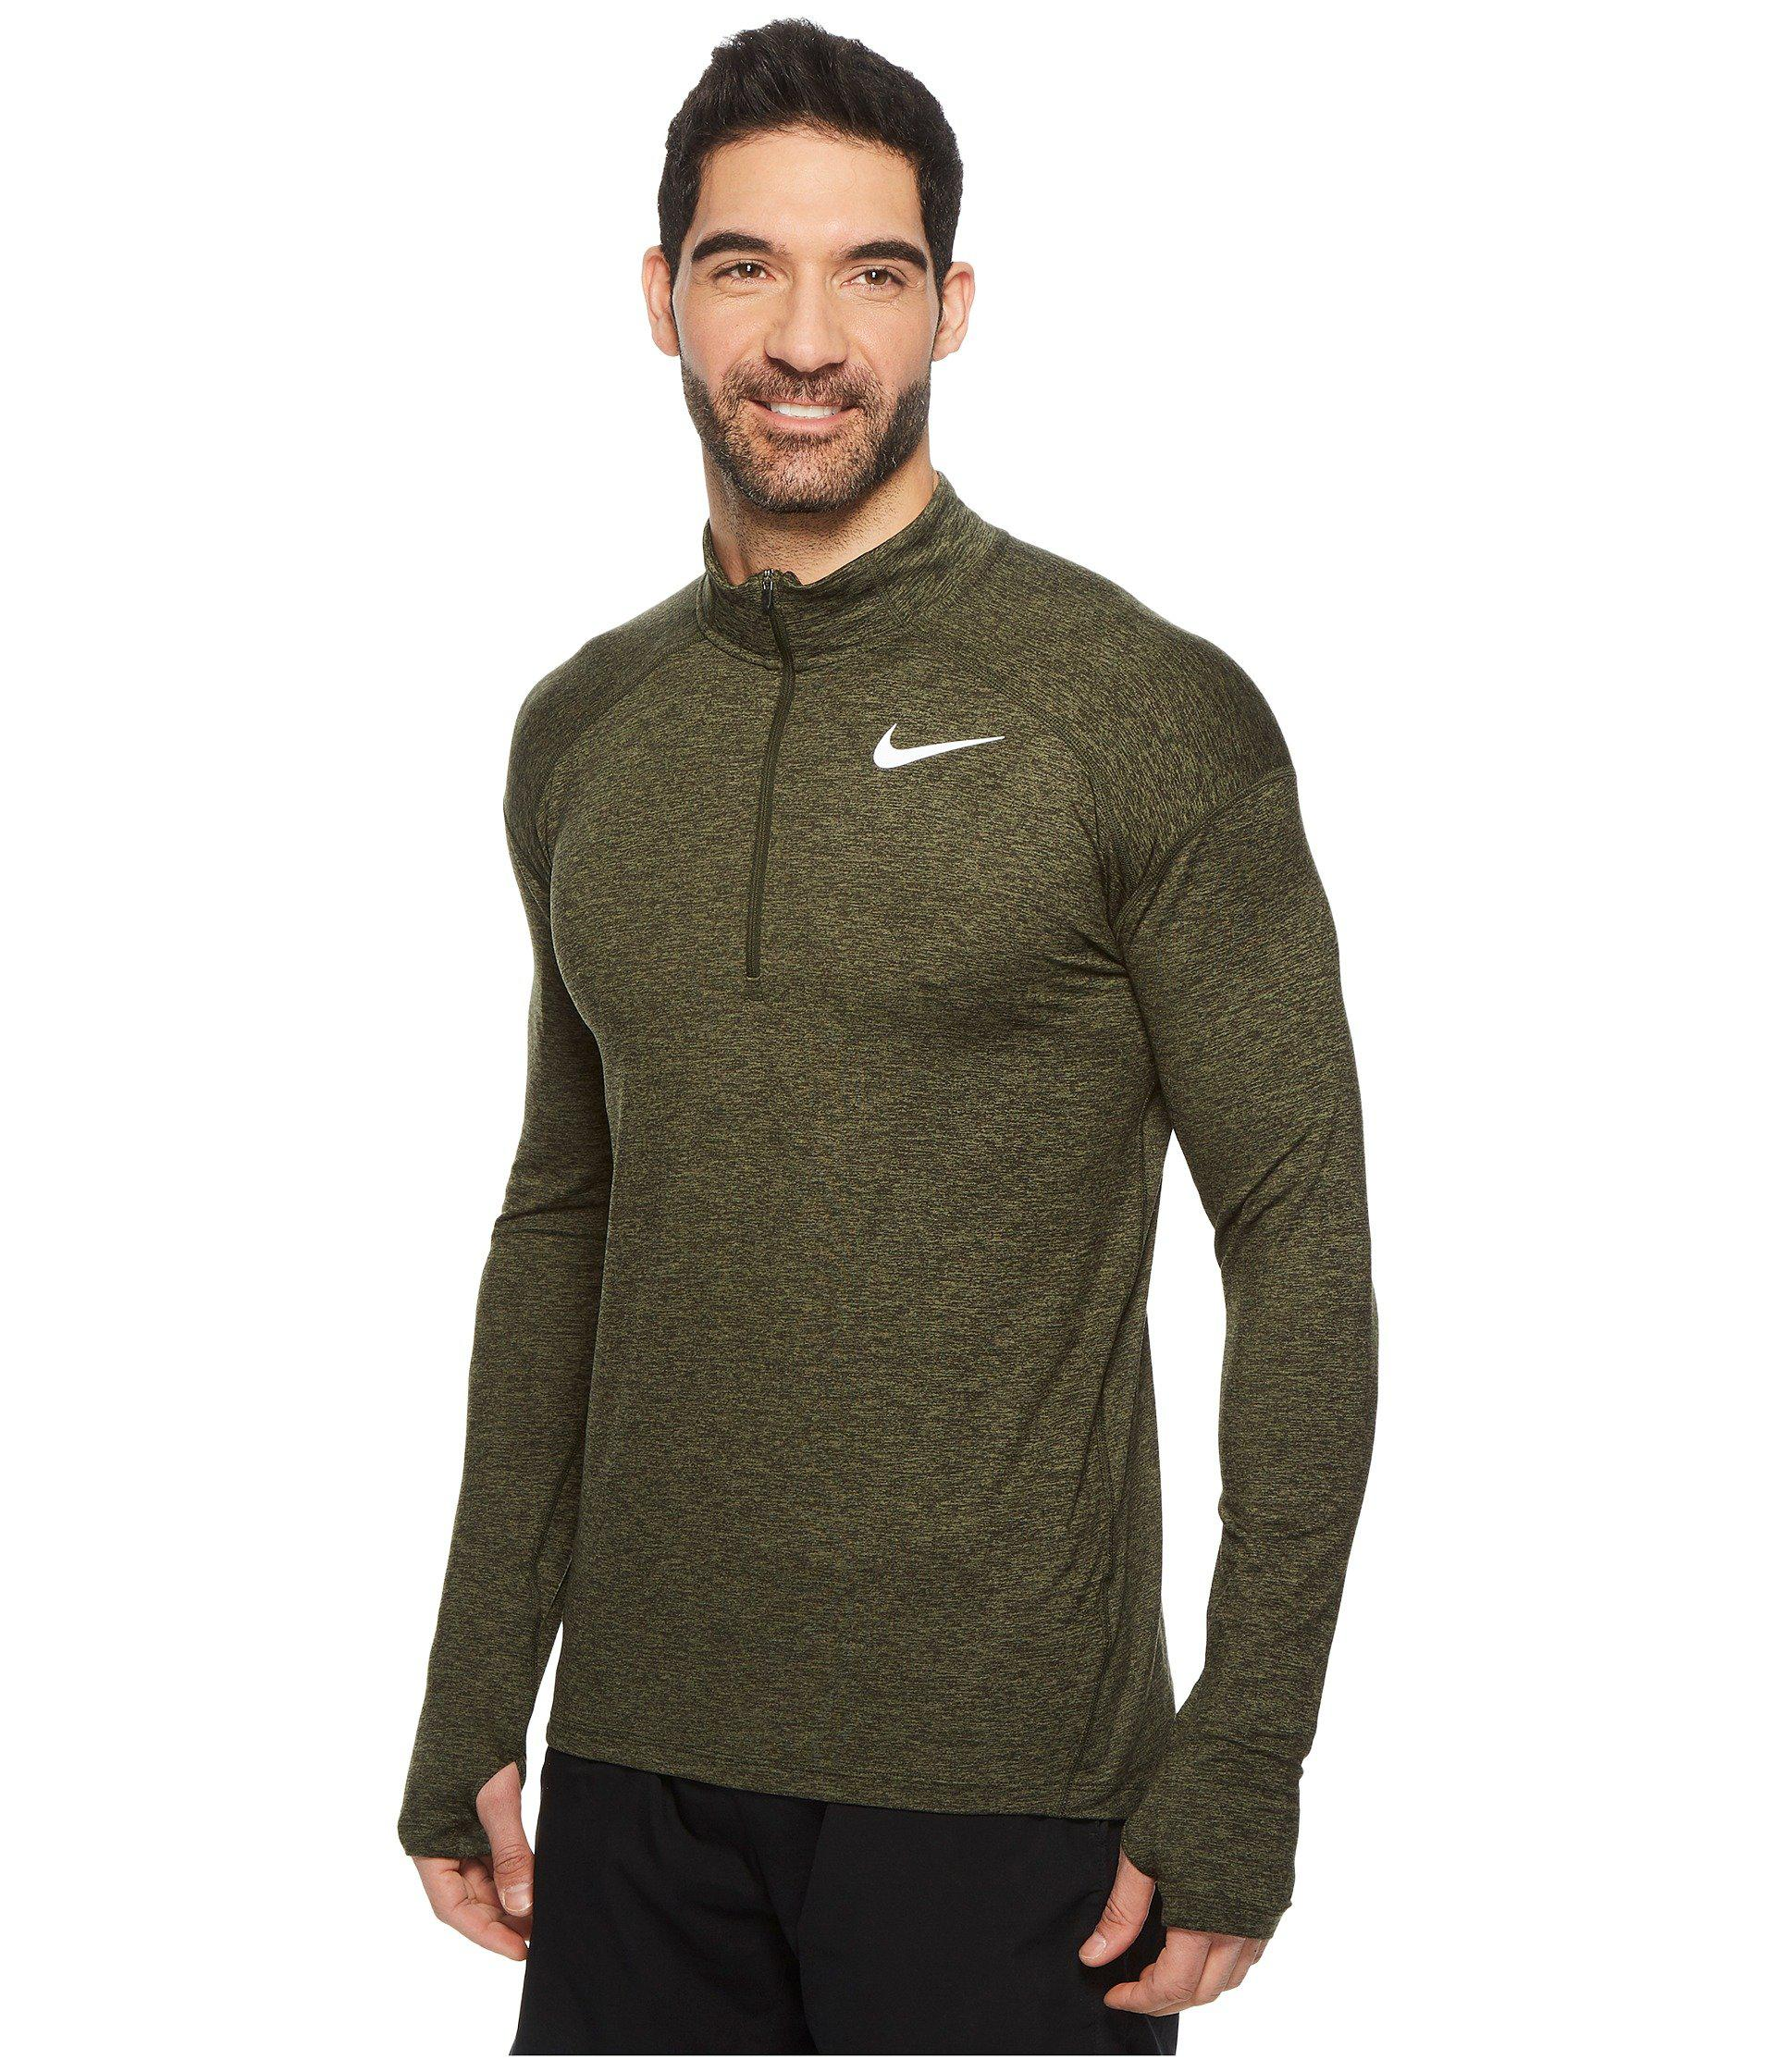 28af3b833cab Nike - Green Dry Element 1 2 Zip Running Top for Men - Lyst. View fullscreen